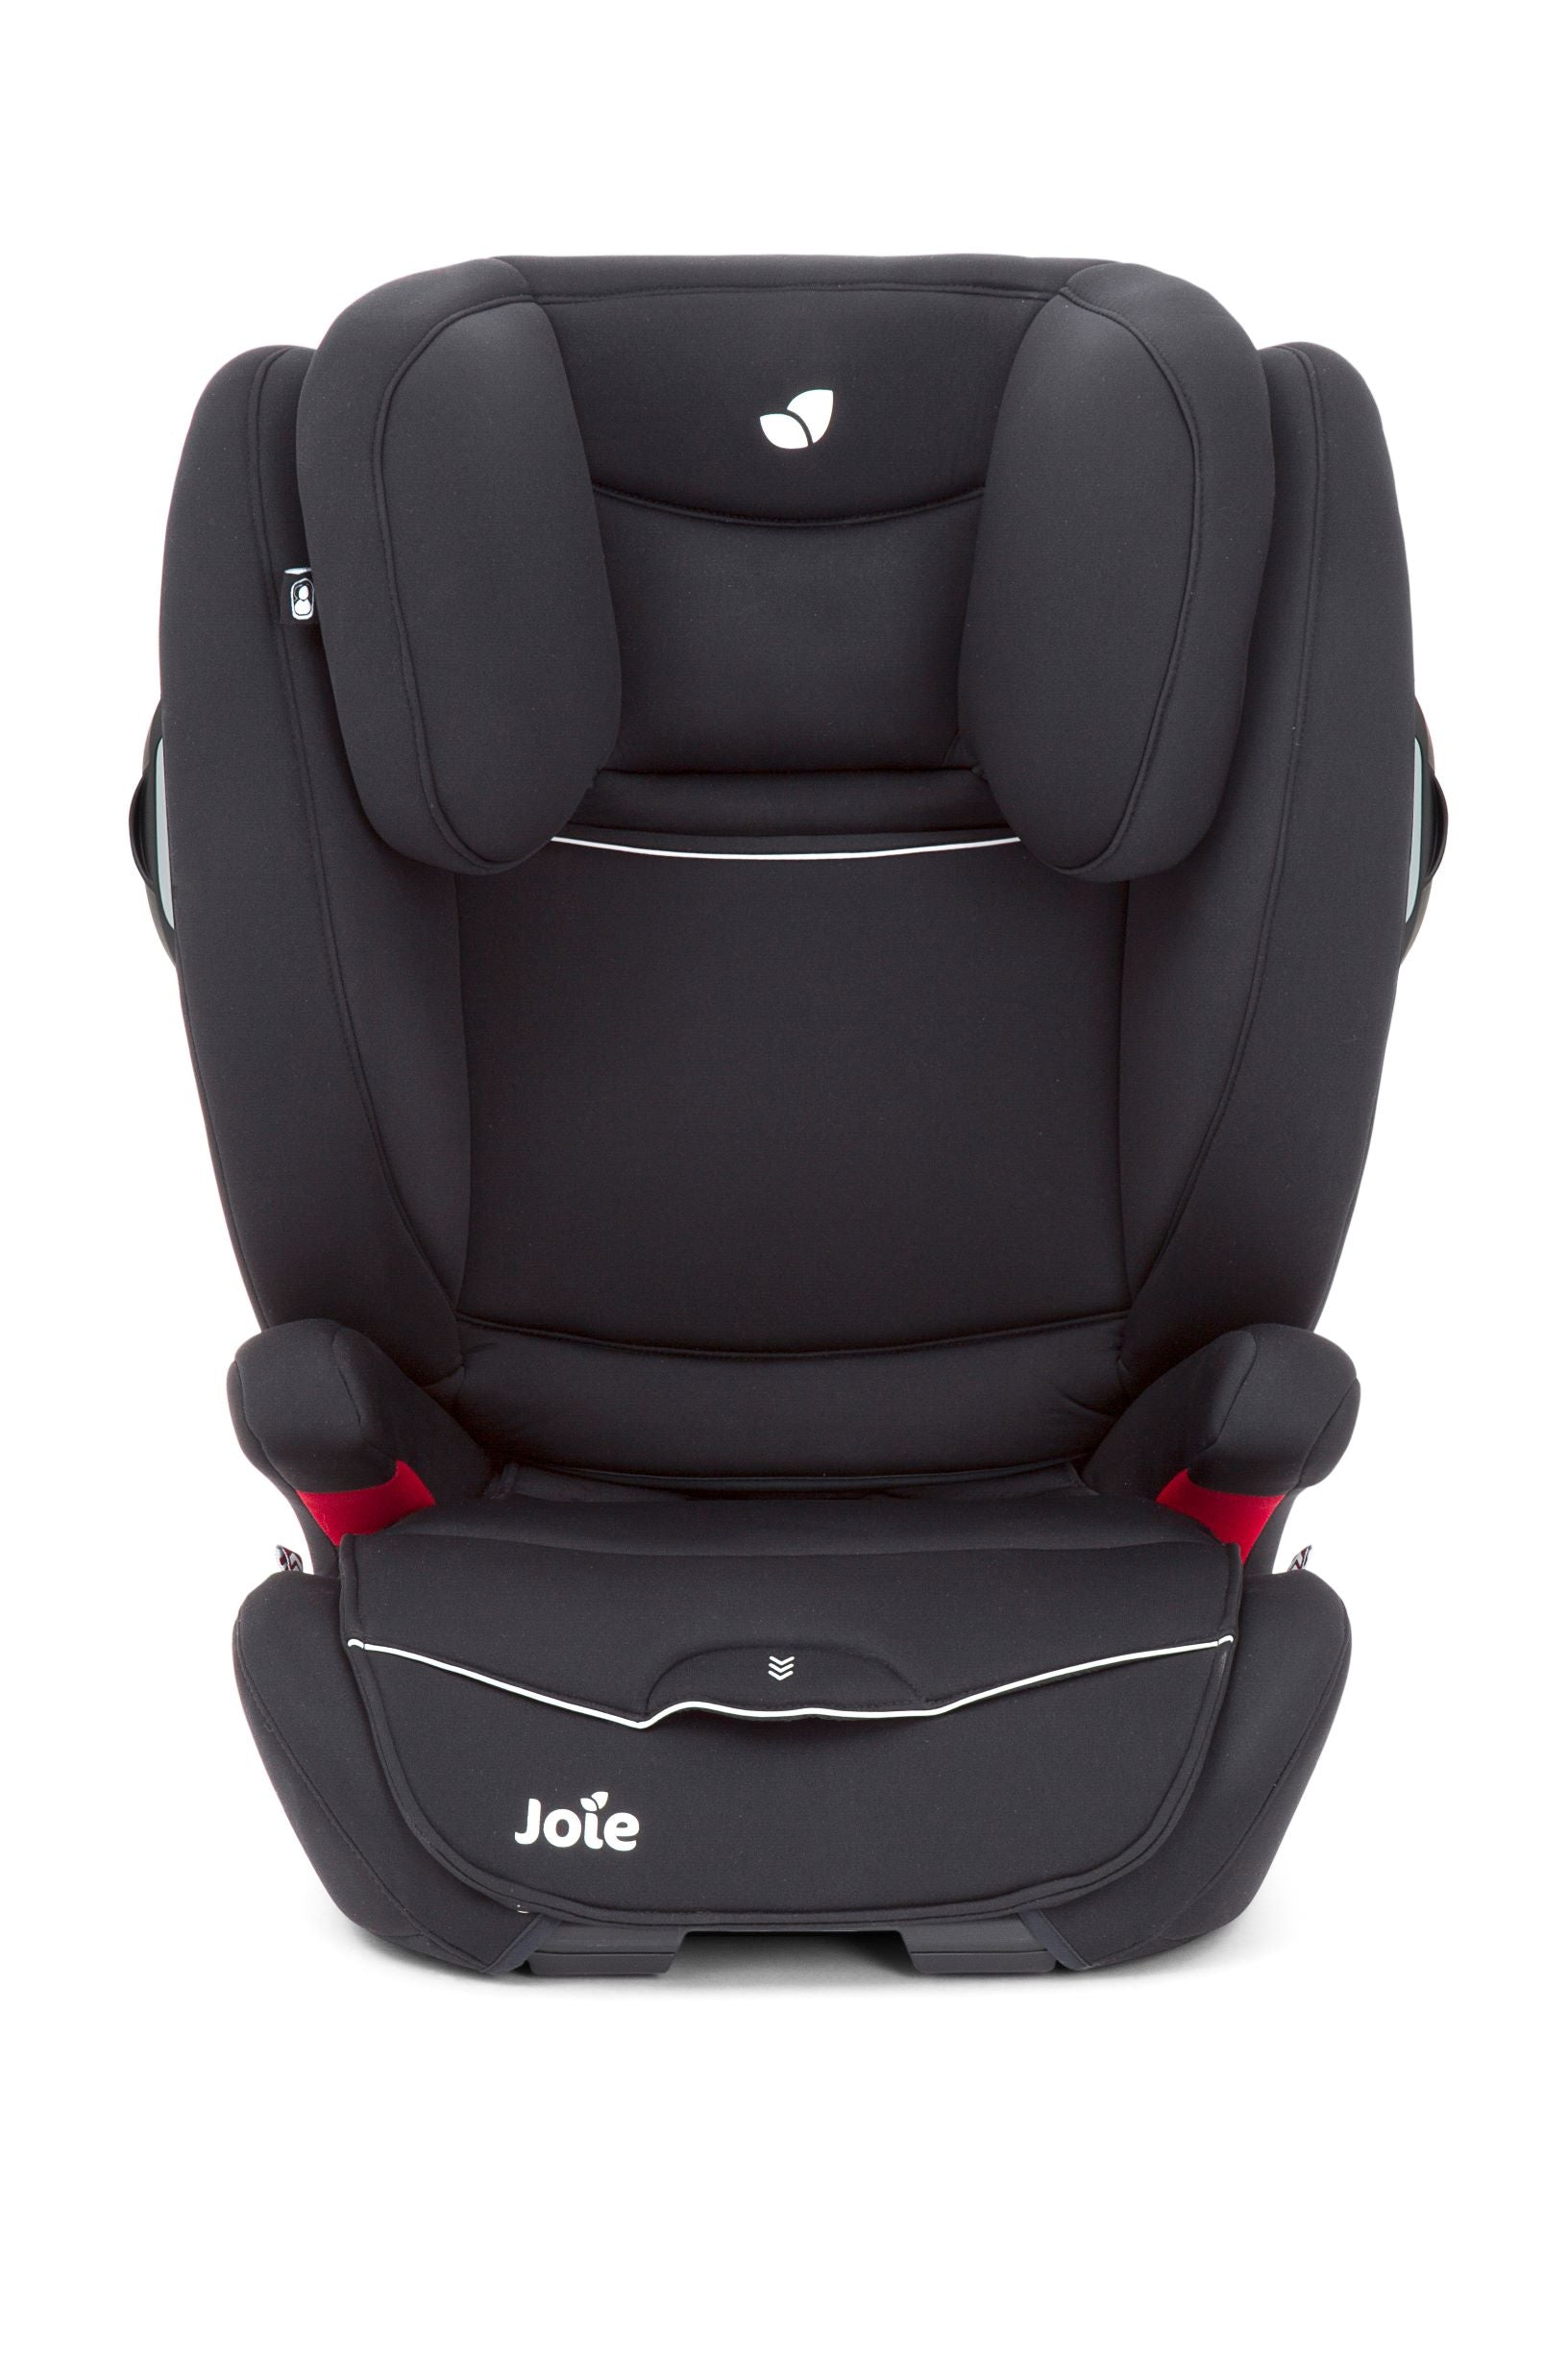 Joie Duallo Group 2/3 ISOfix Car Seat - Happy Baby